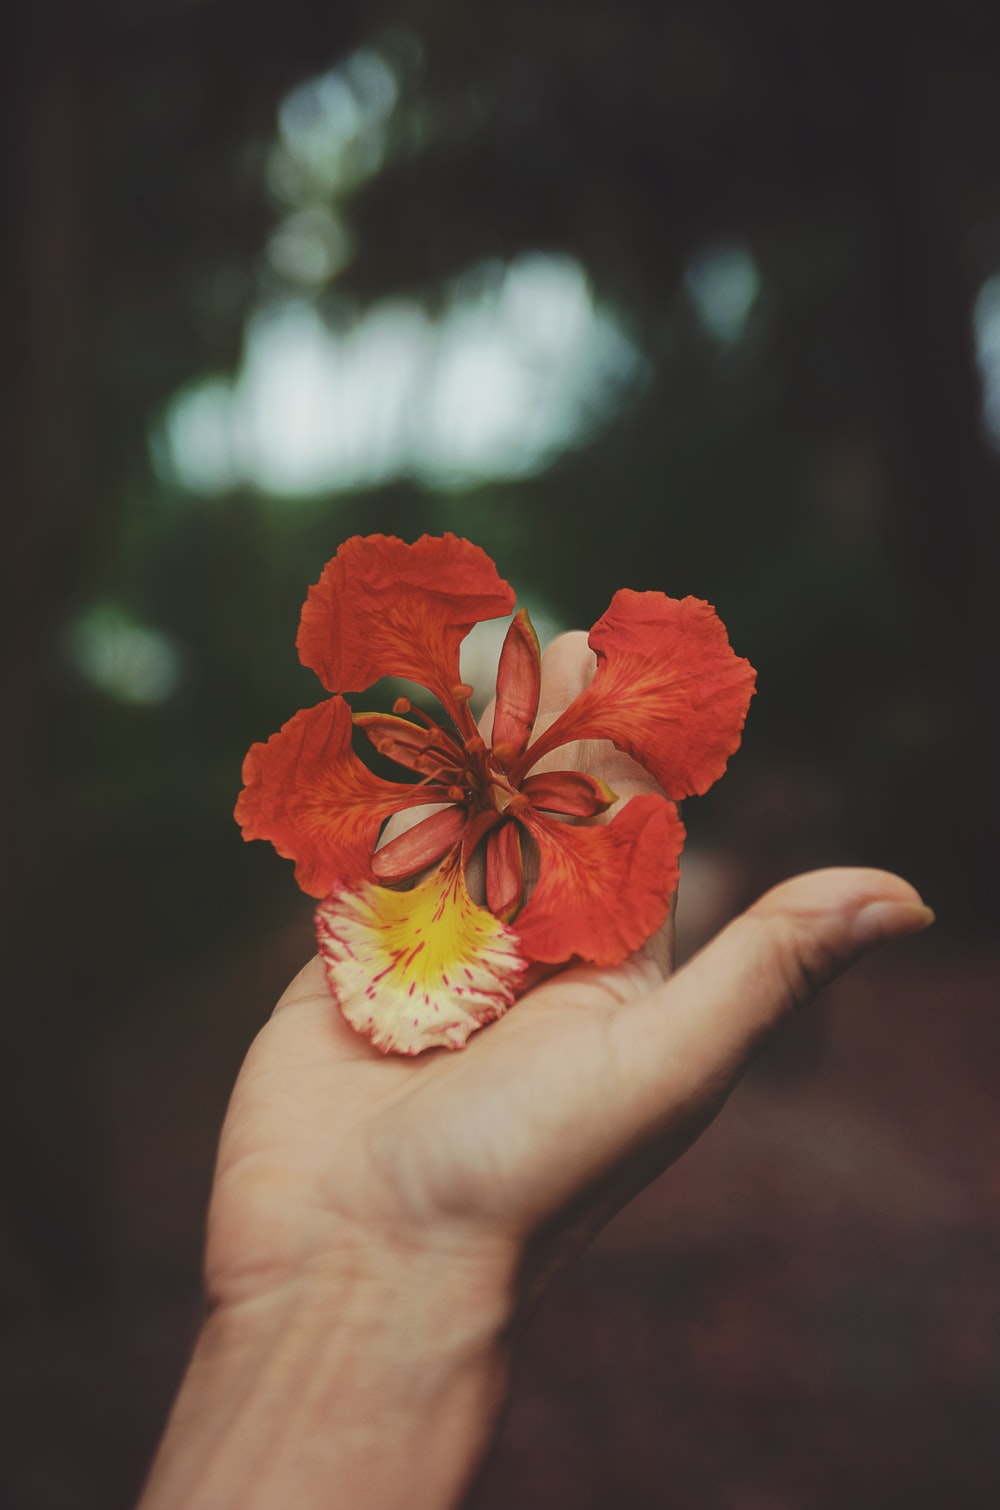 selective focus photography of person holding red petaled flower